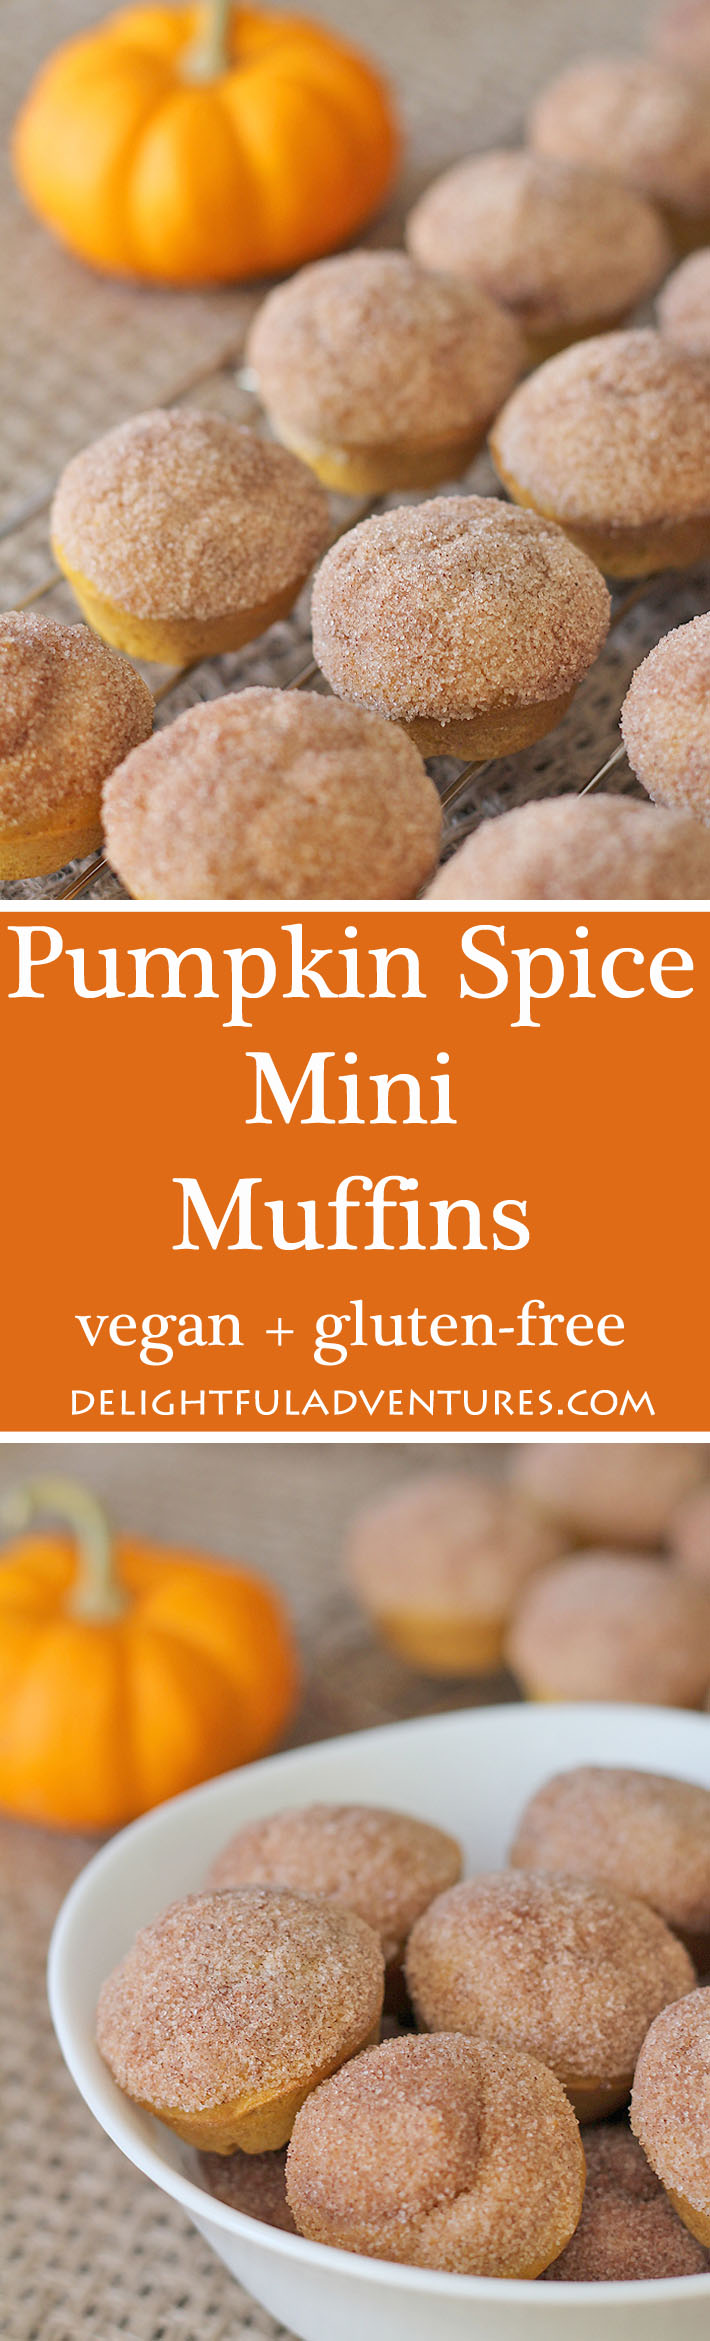 These vegan gluten free pumpkin spice mini muffins are the perfect treat for fall—or any other time of year. Enjoy them with a latte or on their own!